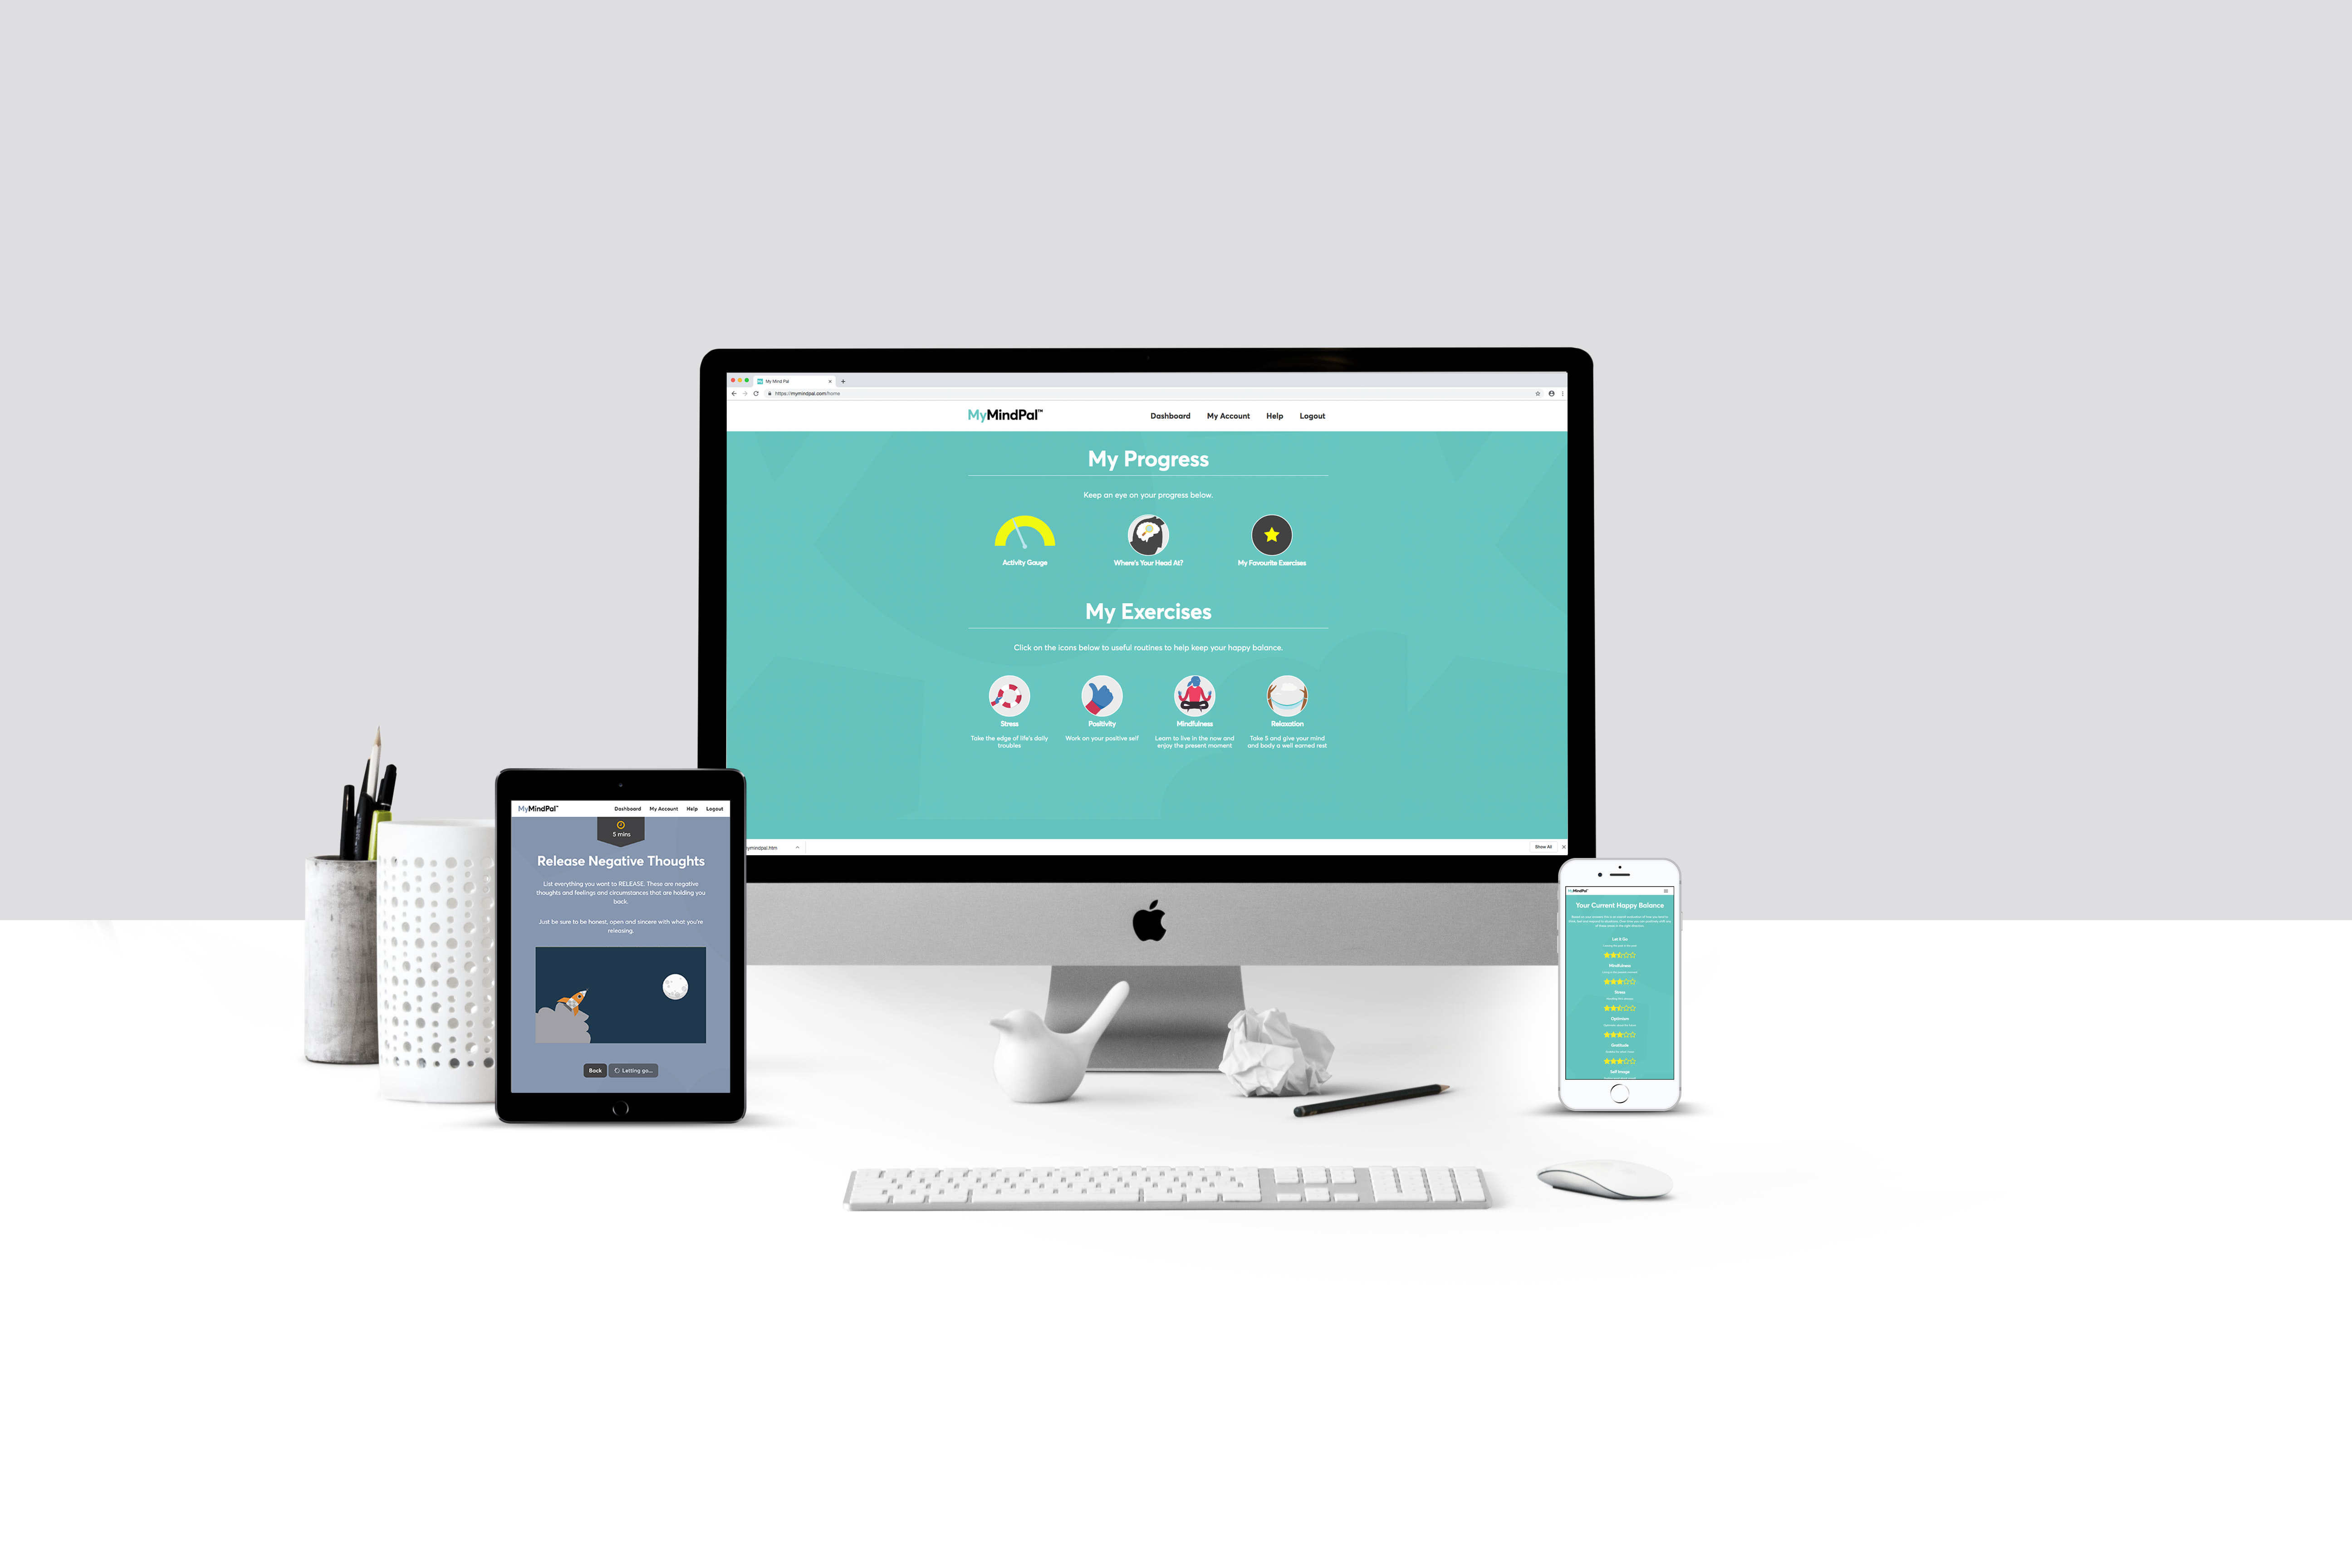 MyMindPal - Emotional Wellbeing For Everyone